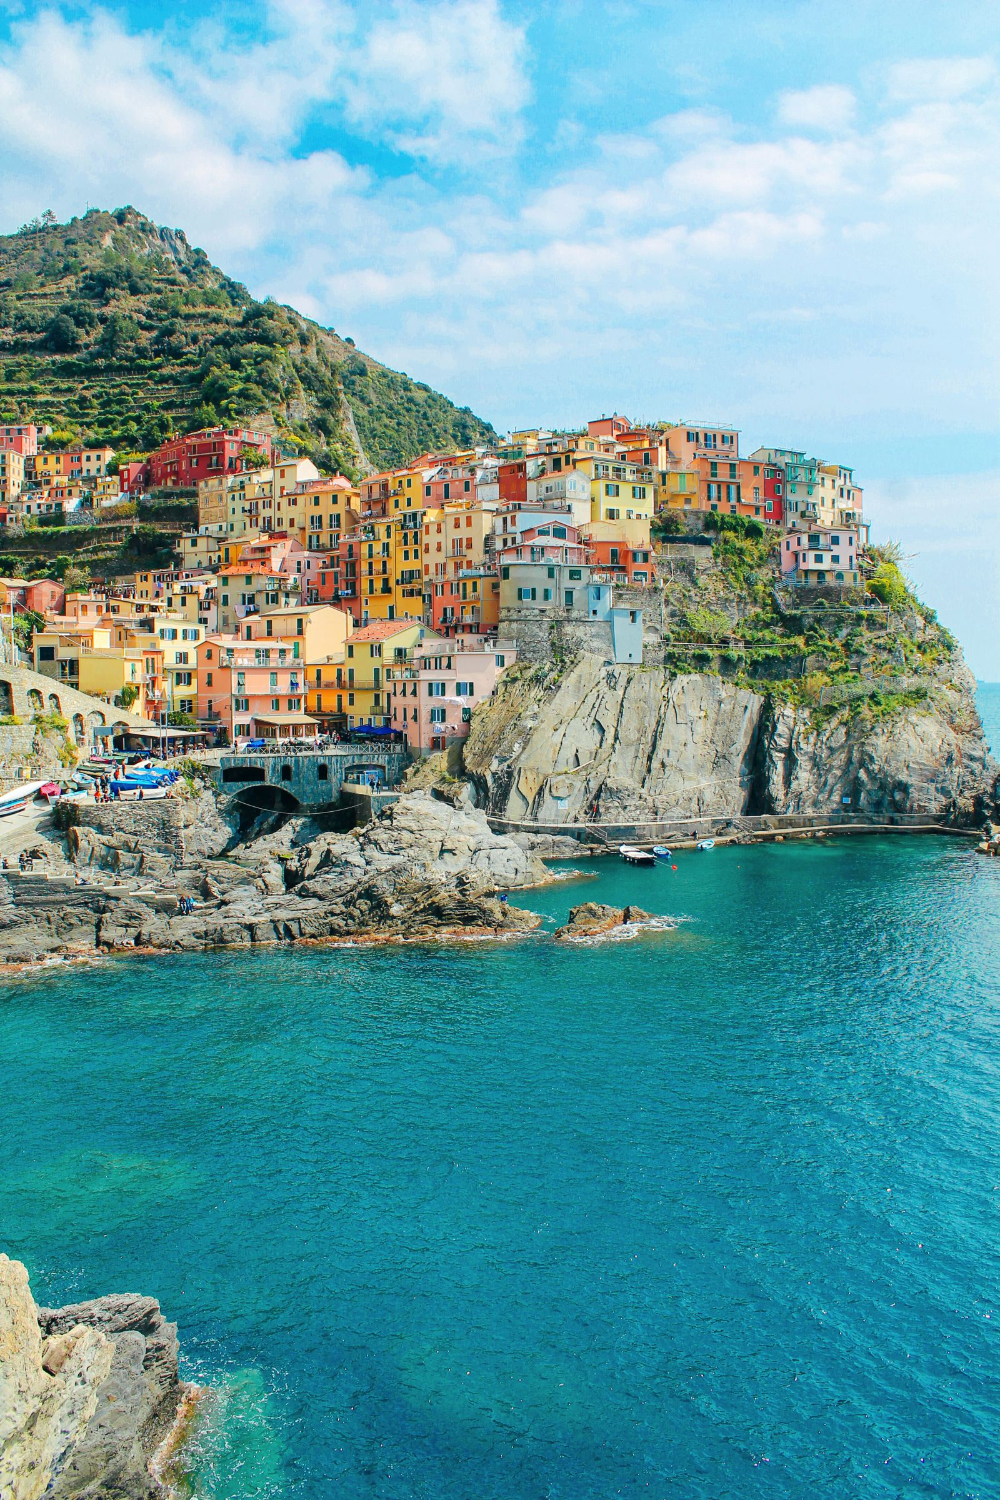 Manarola in Cinque Terre, Italy – The Photo Diary! [2 of 5]